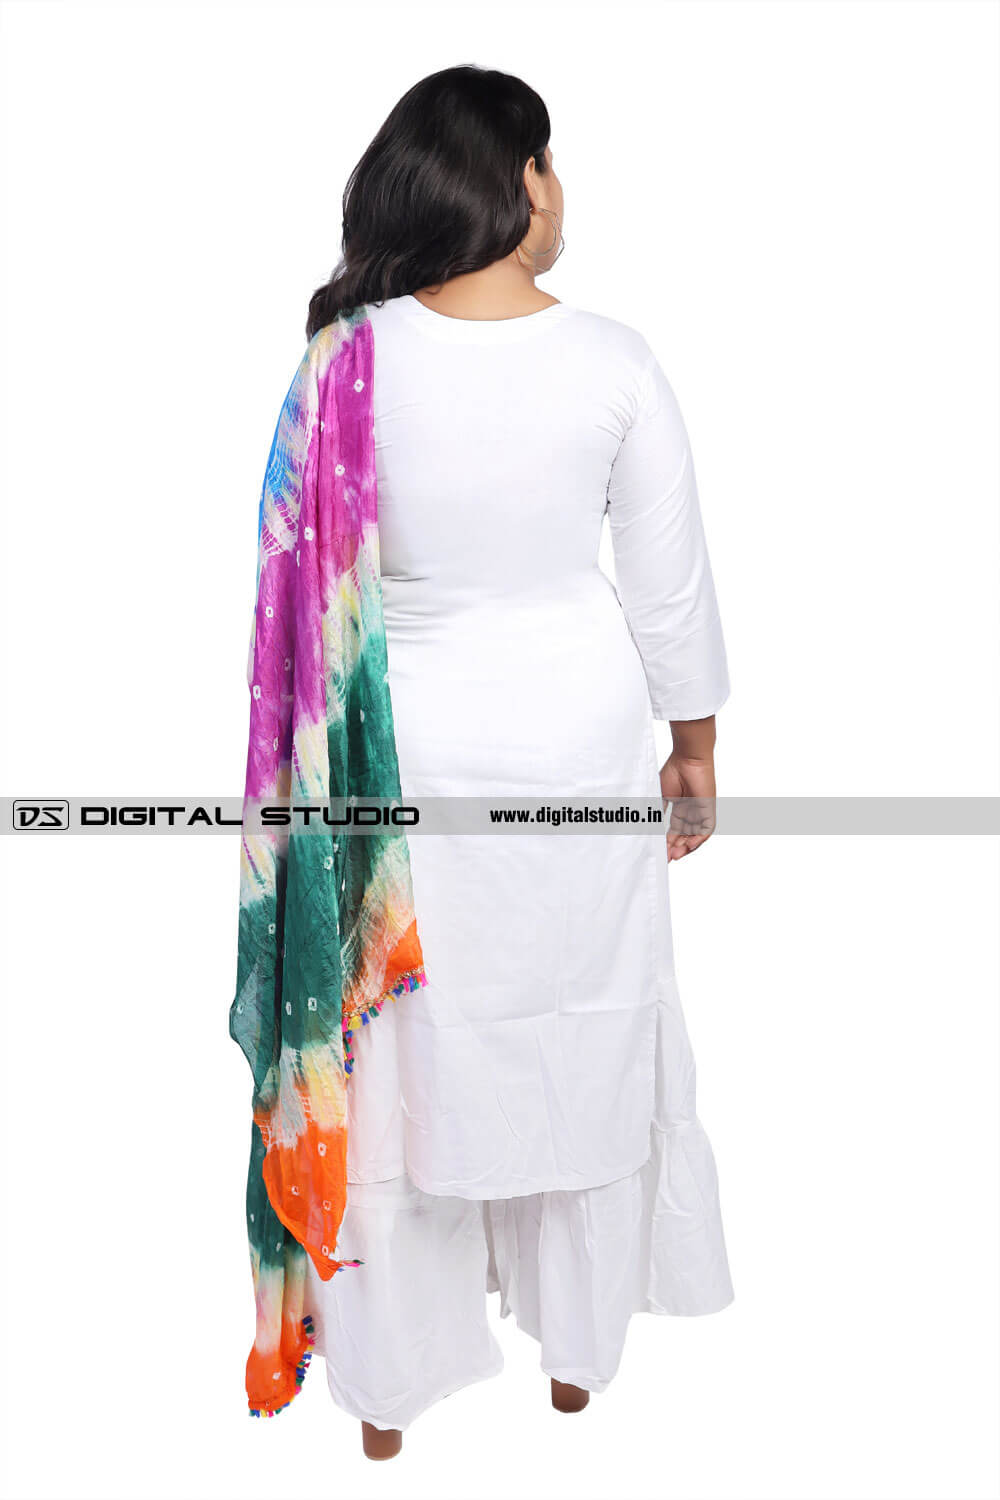 Printed dupatta and white salwar kameez